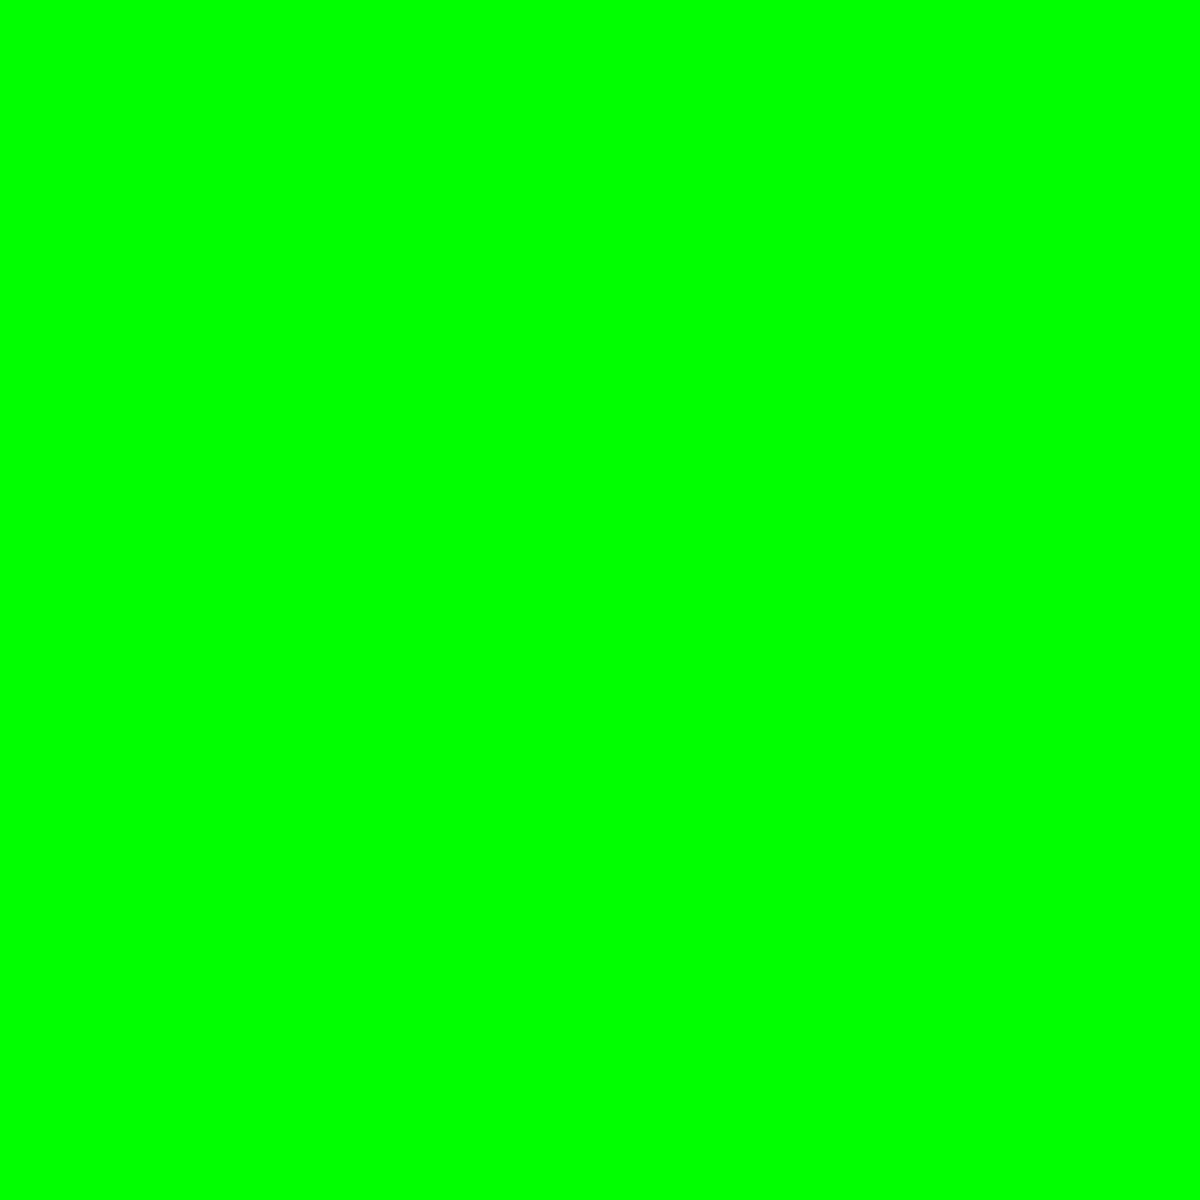 1200x1200 - Solid Green 2